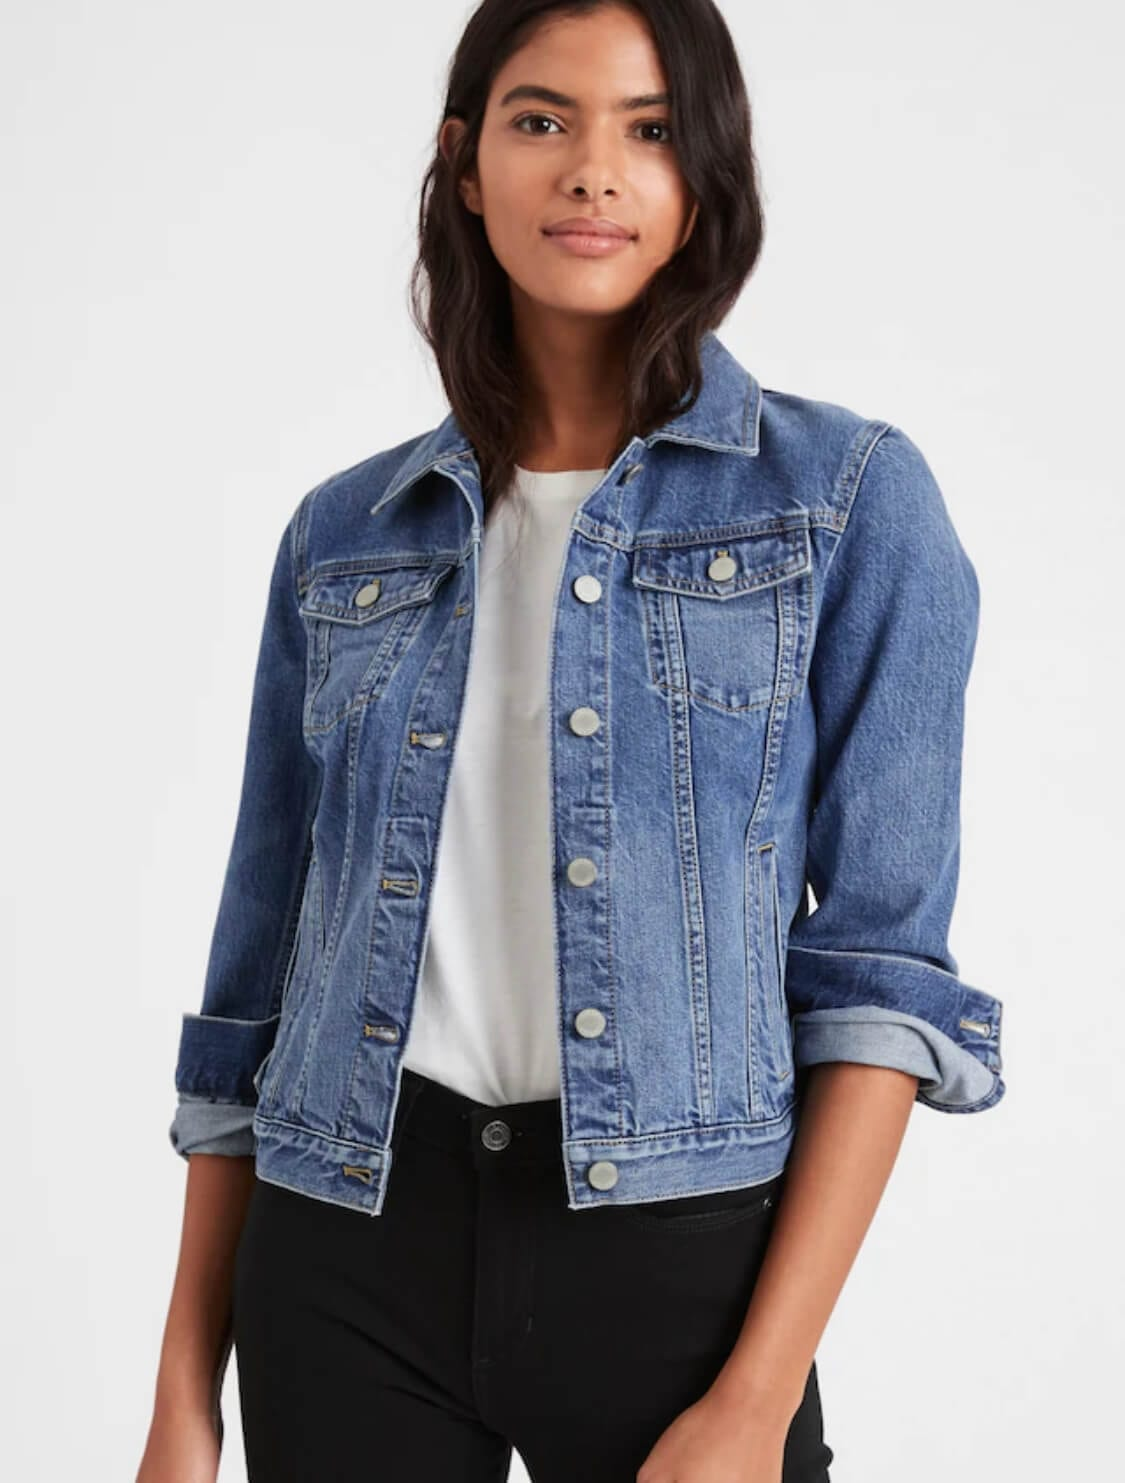 Jean Jacket for traveling a long haul flight tip and trick